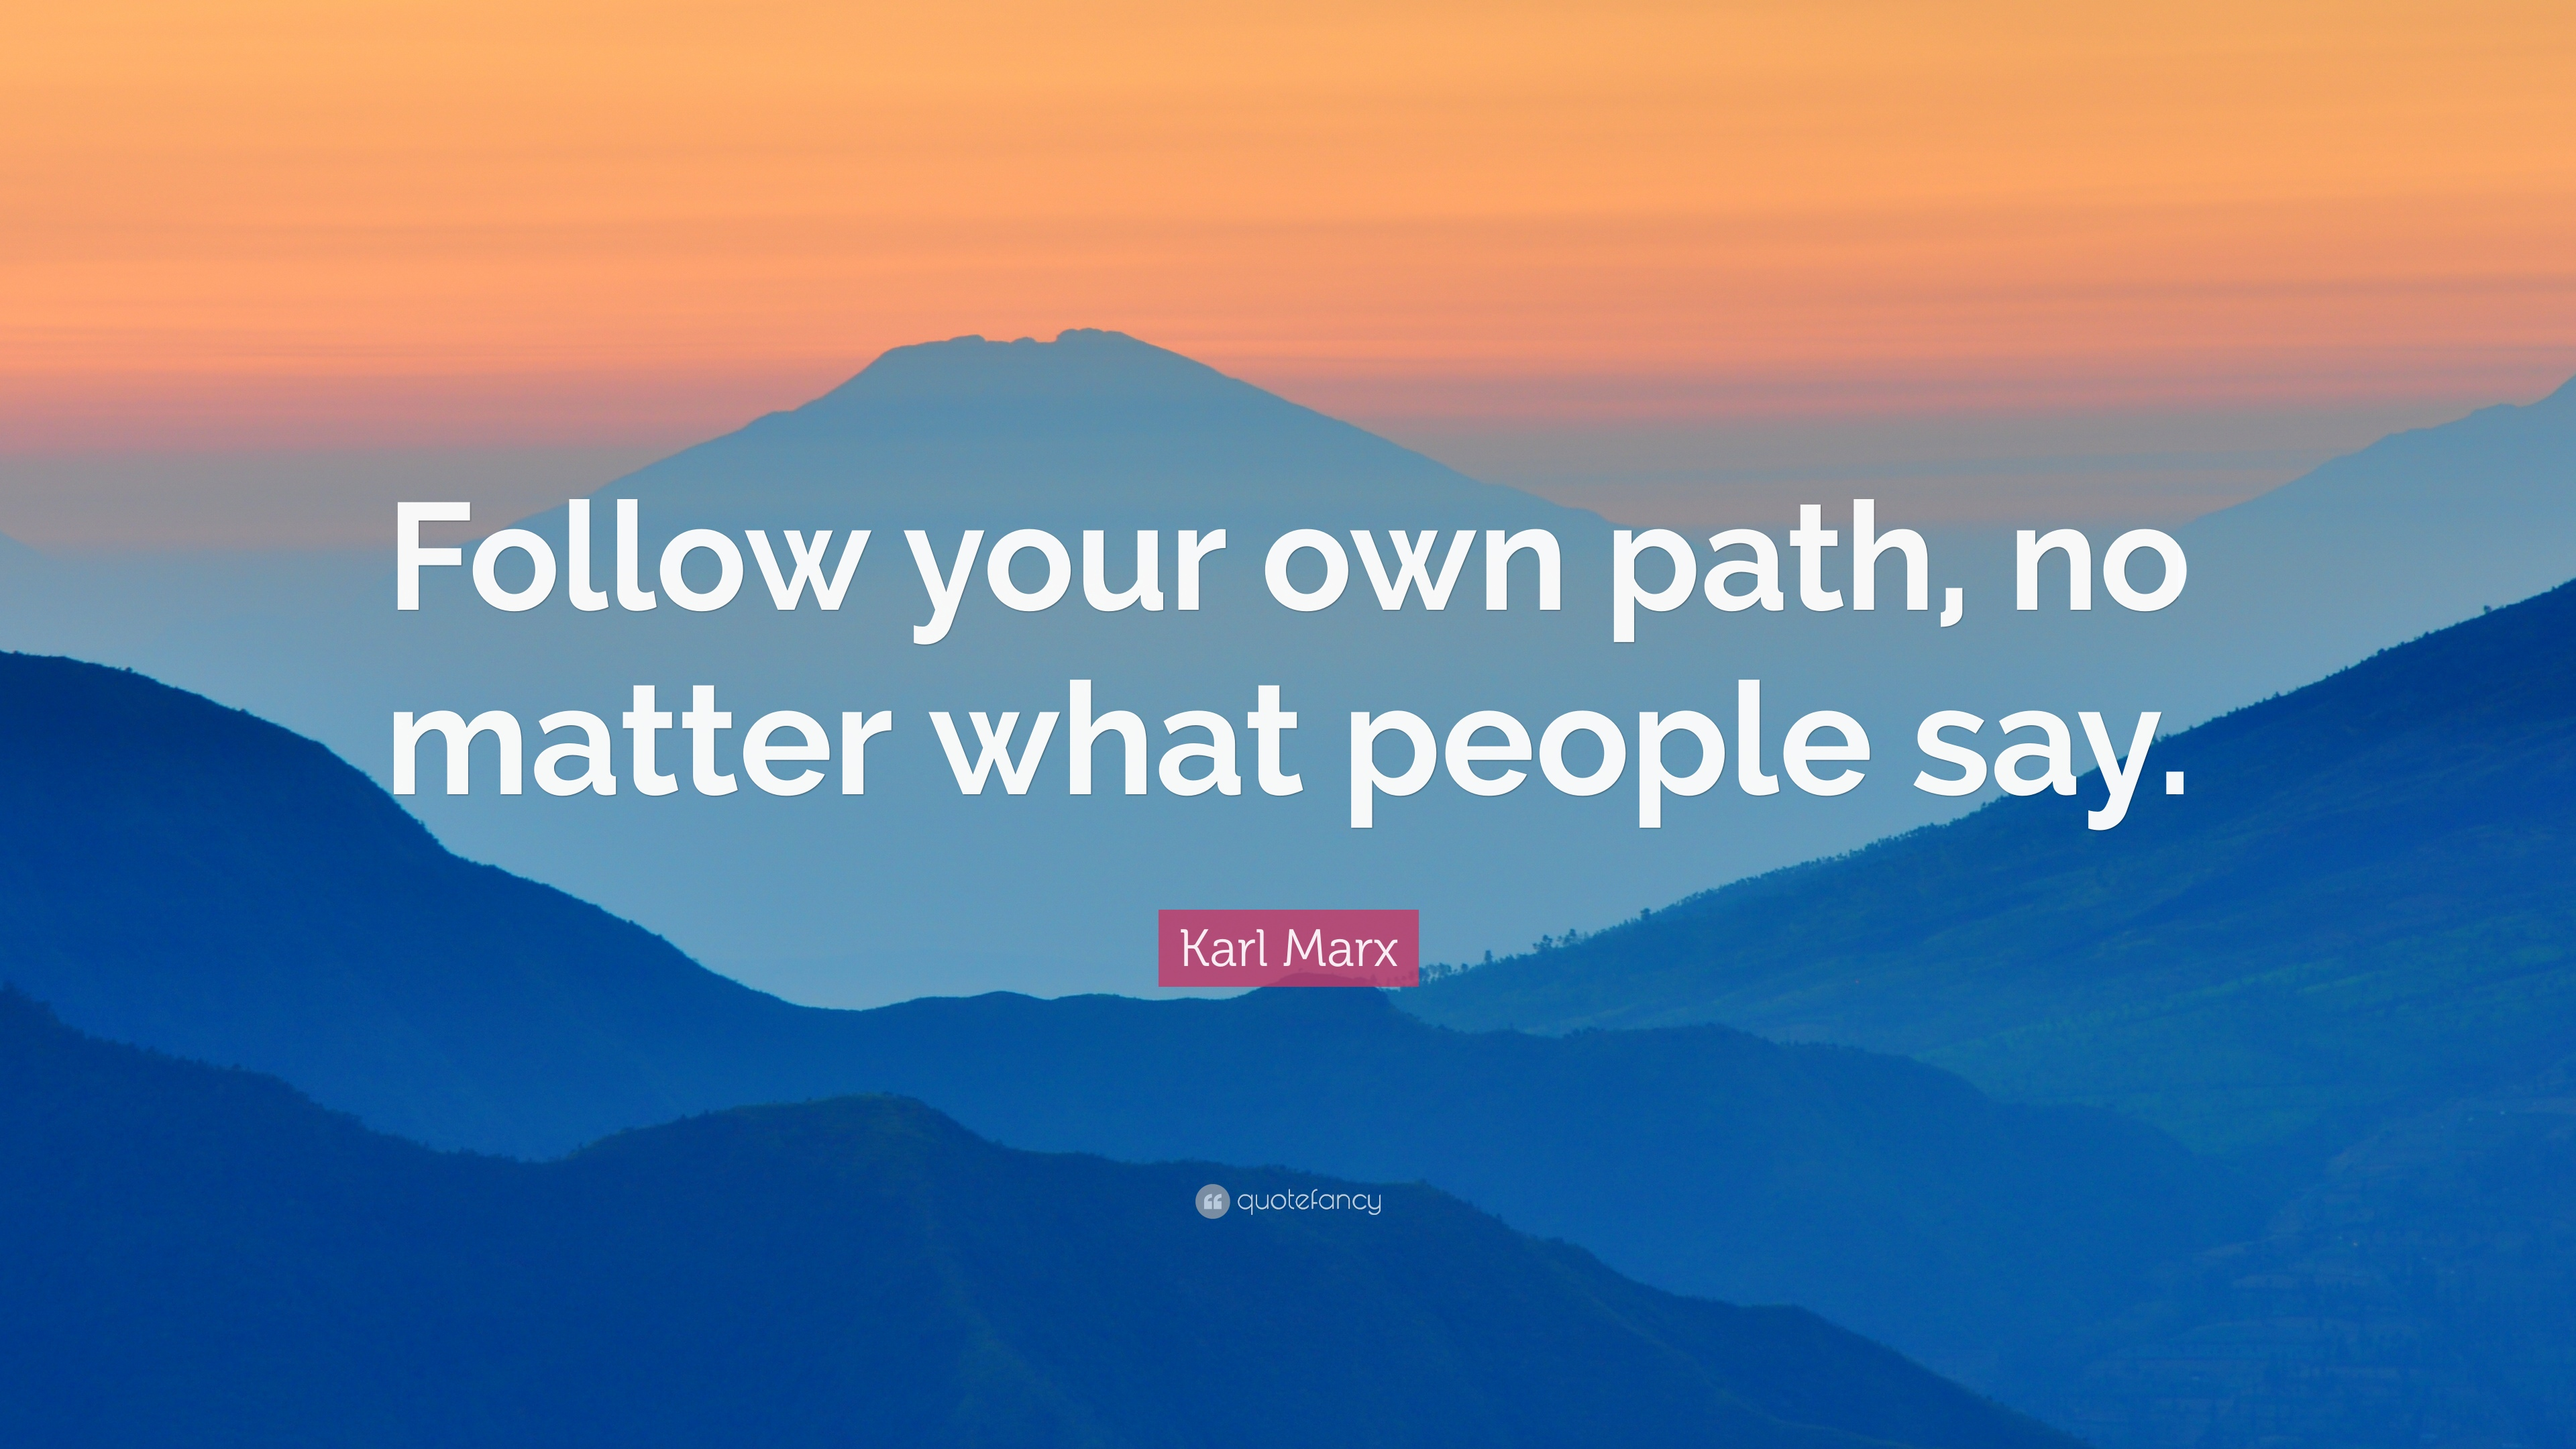 Karl Marx Quote Follow Your Own Path No Matter What People Say